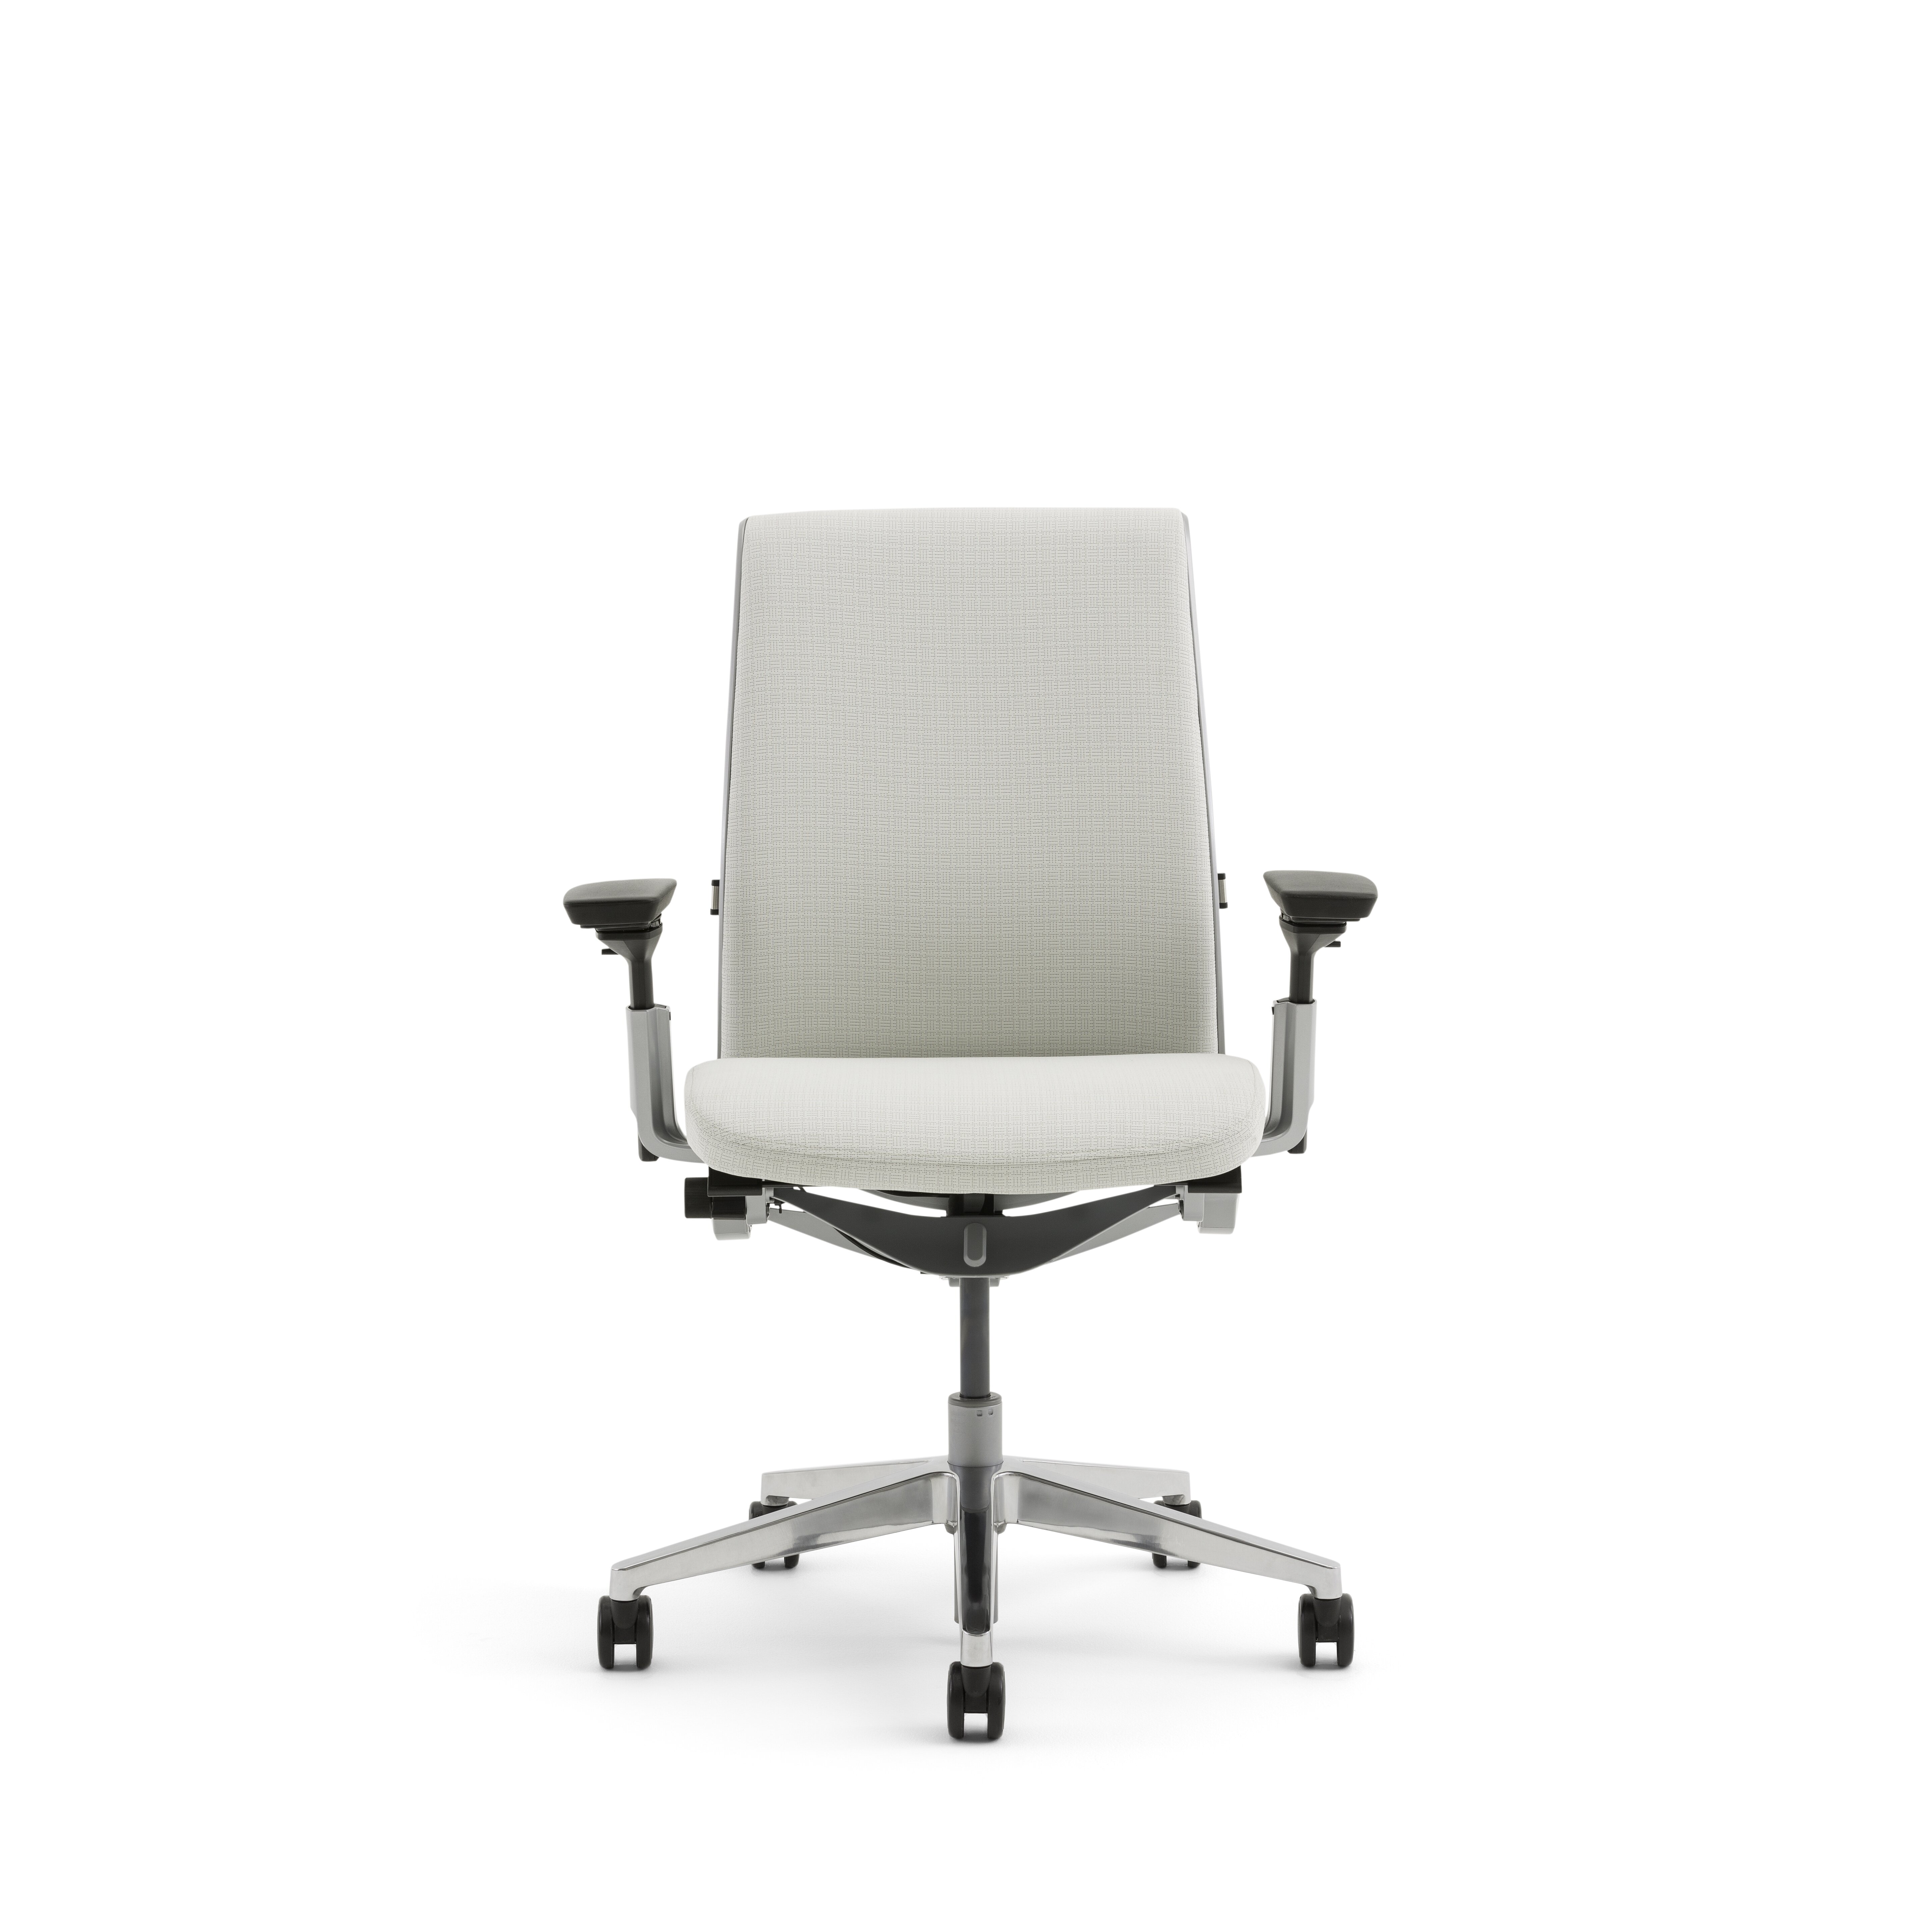 Steelcase Think Chair Review Steelcase Think Mid Back Fabric Conference Chair Reviews Wayfair  sc 1 th 225 & steelcase think chair review - 28 images - steelcase think chair r ...